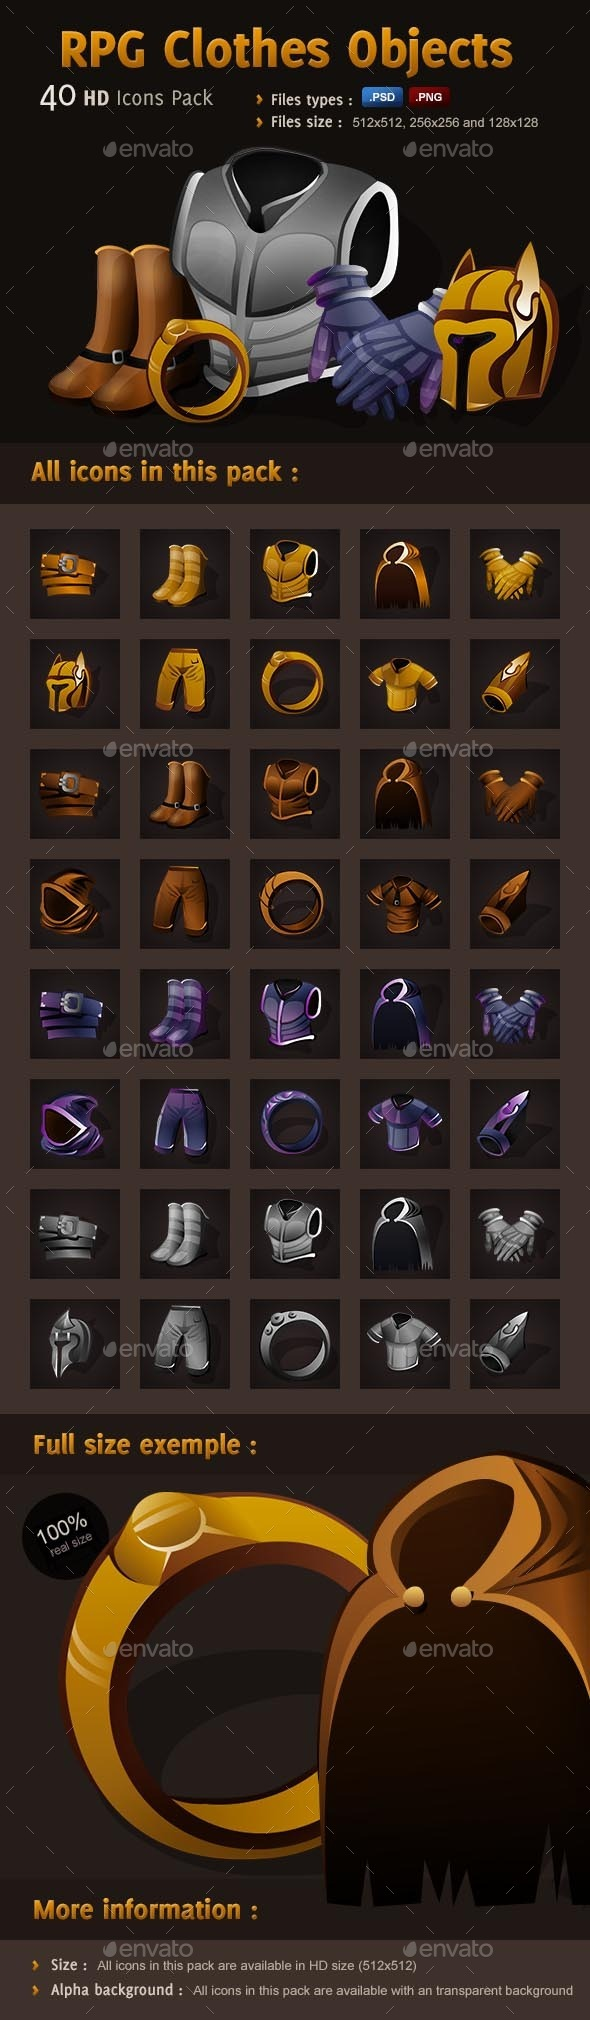 GraphicRiver RPG Icons Pack Clothes Objects 9509844